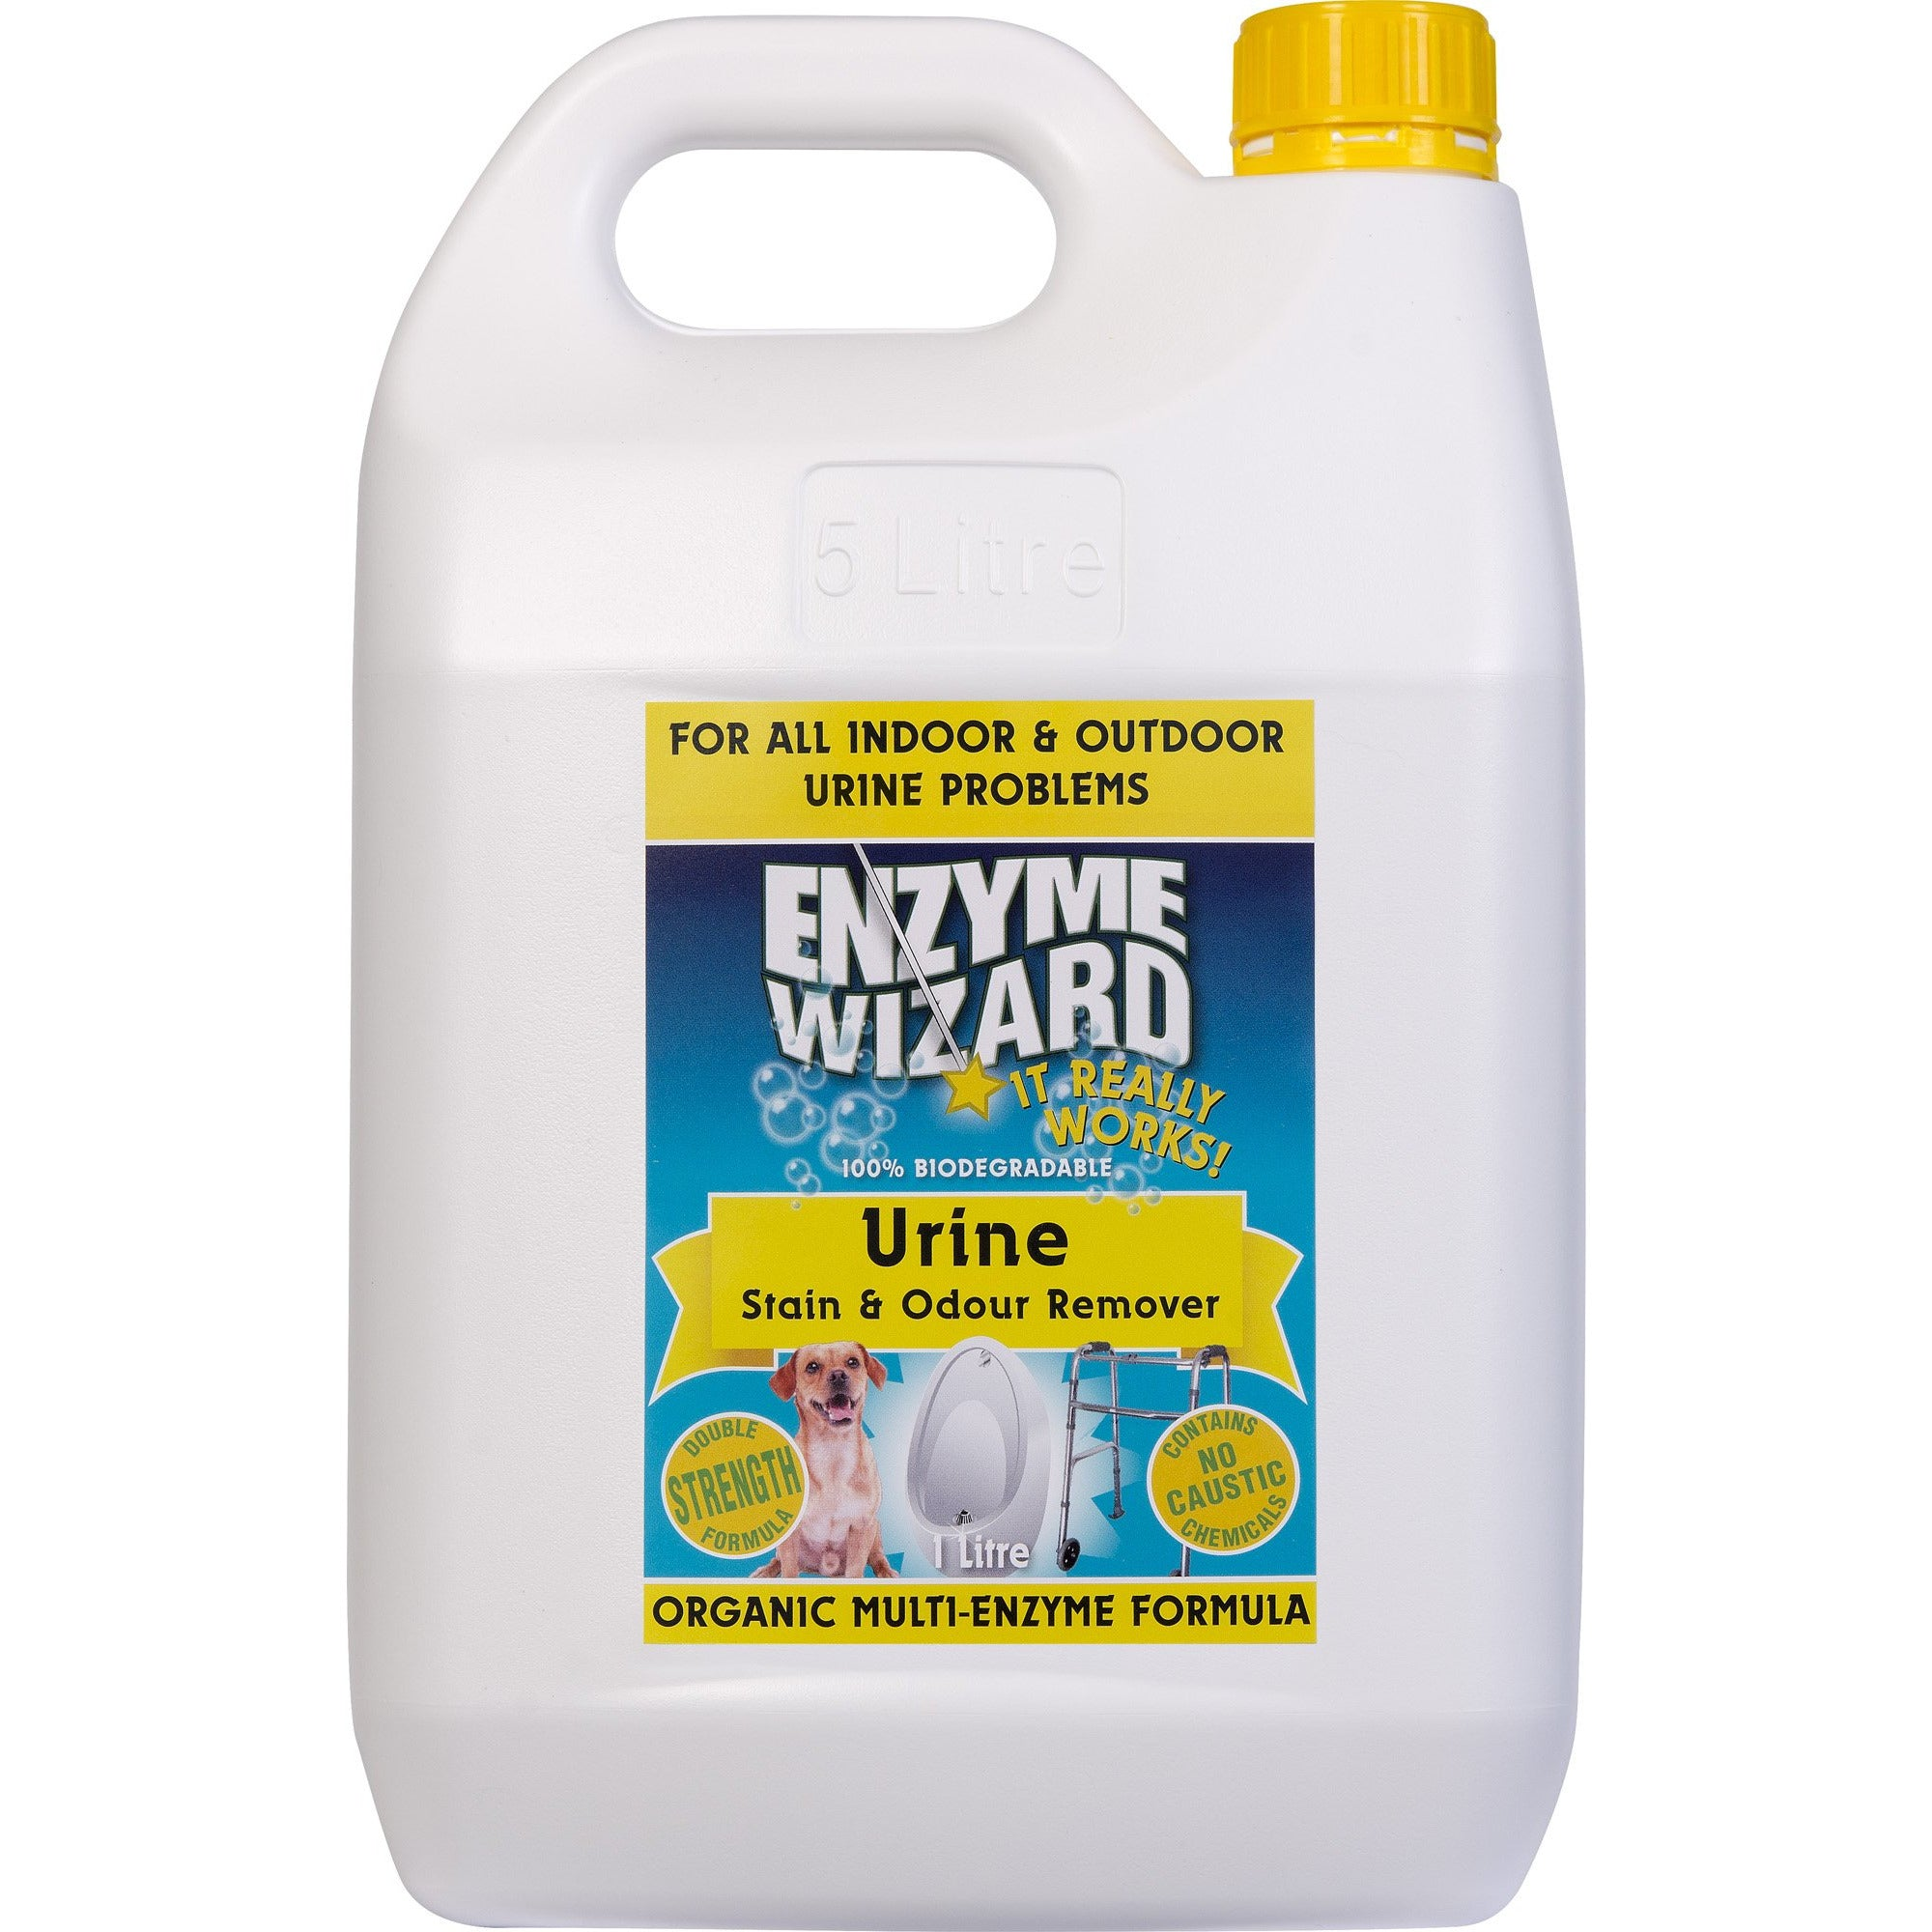 ENZYME WIZARD URINE STAIN & ODOUR REMOVER 5 LITRE